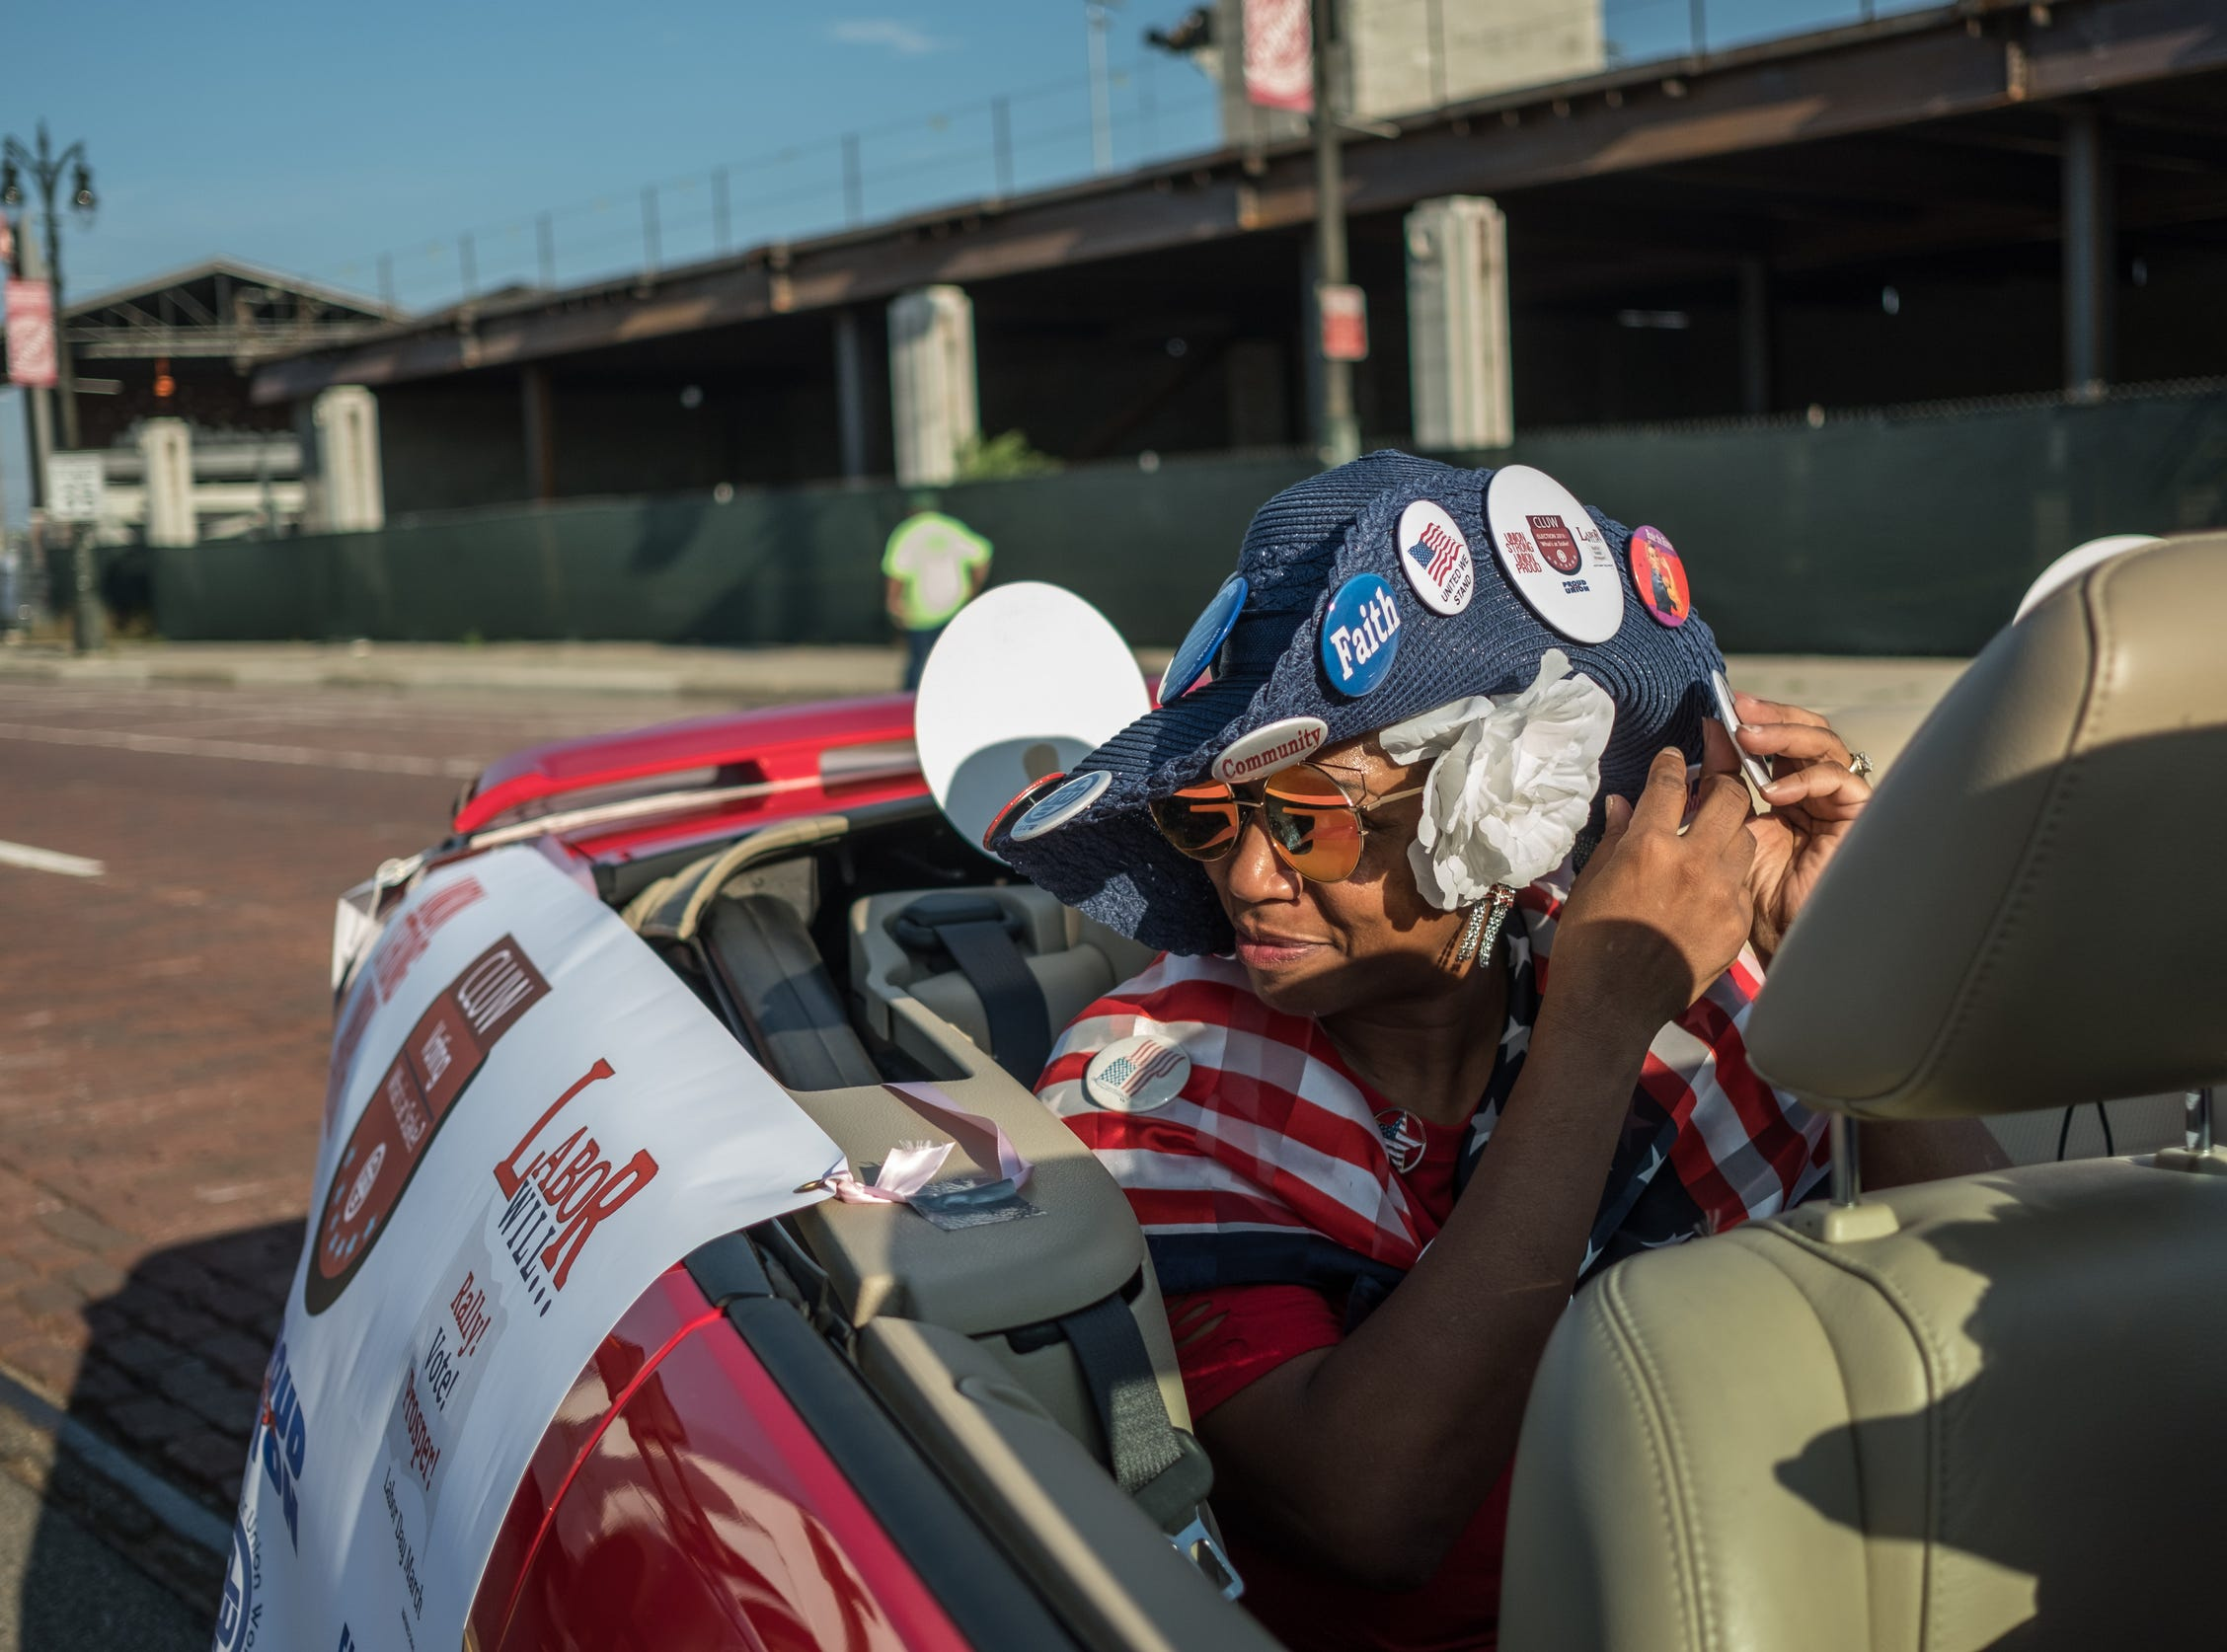 Coalition of Labor Union Women member Brenda Scott of Detroit fixes a butt on her hat while waiting to ride along in a convertible on Michigan Avenue in Corktown during Detroit's Labor Day Parade on Monday, September 3, 2018.